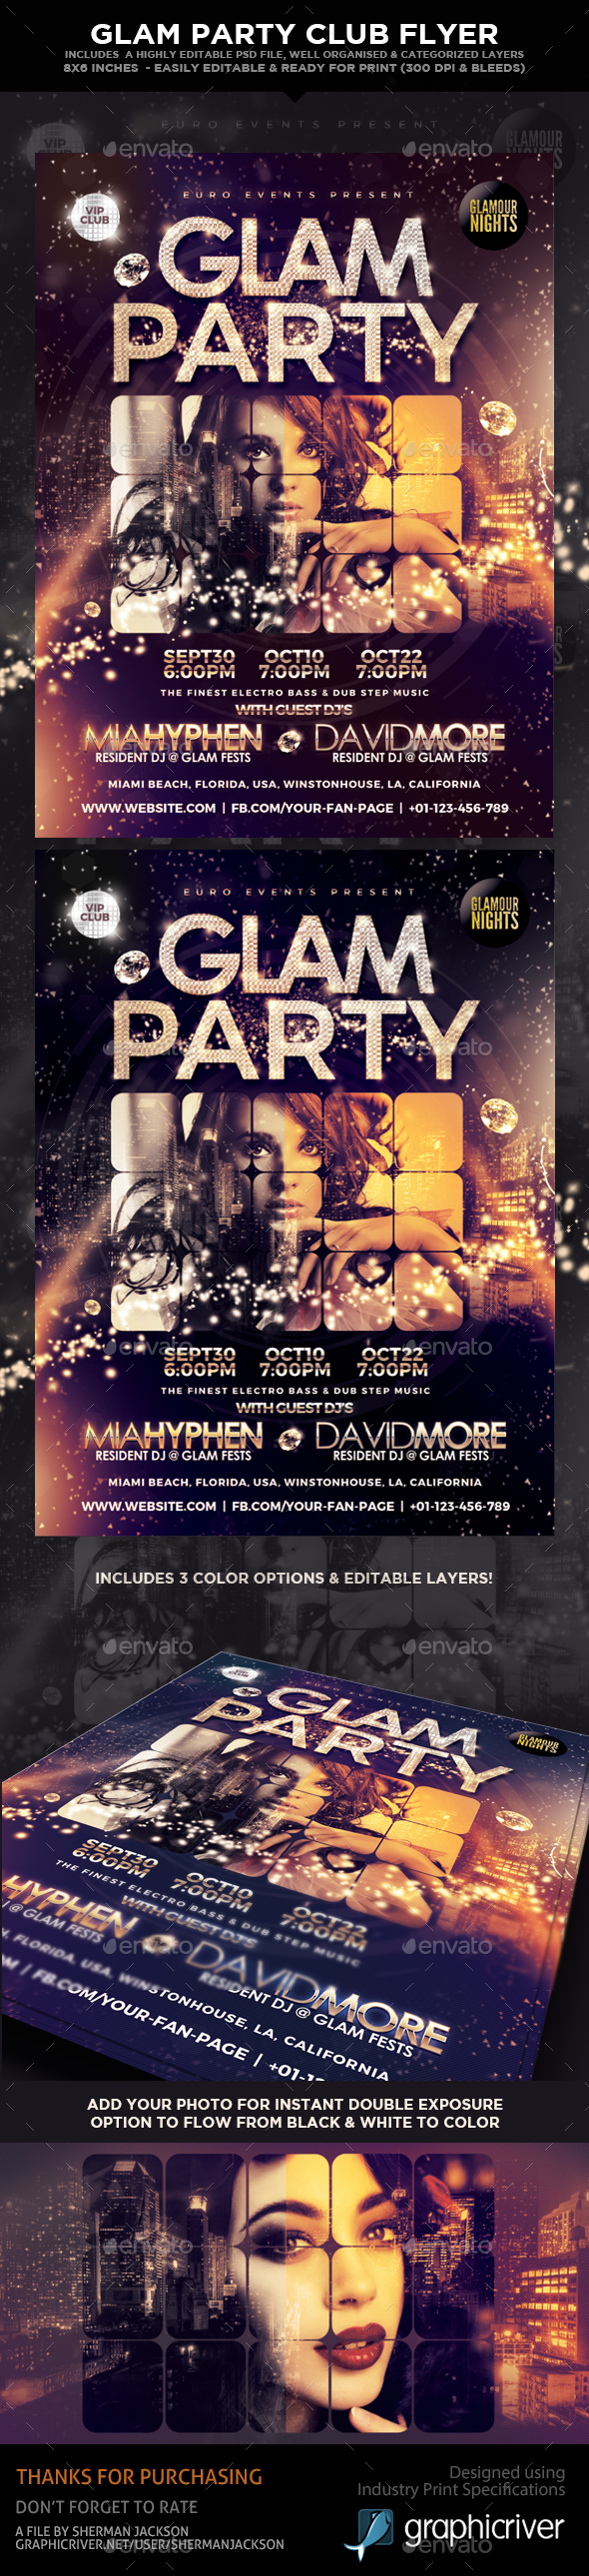 Glam Party Club Flyer - Clubs & Parties Events